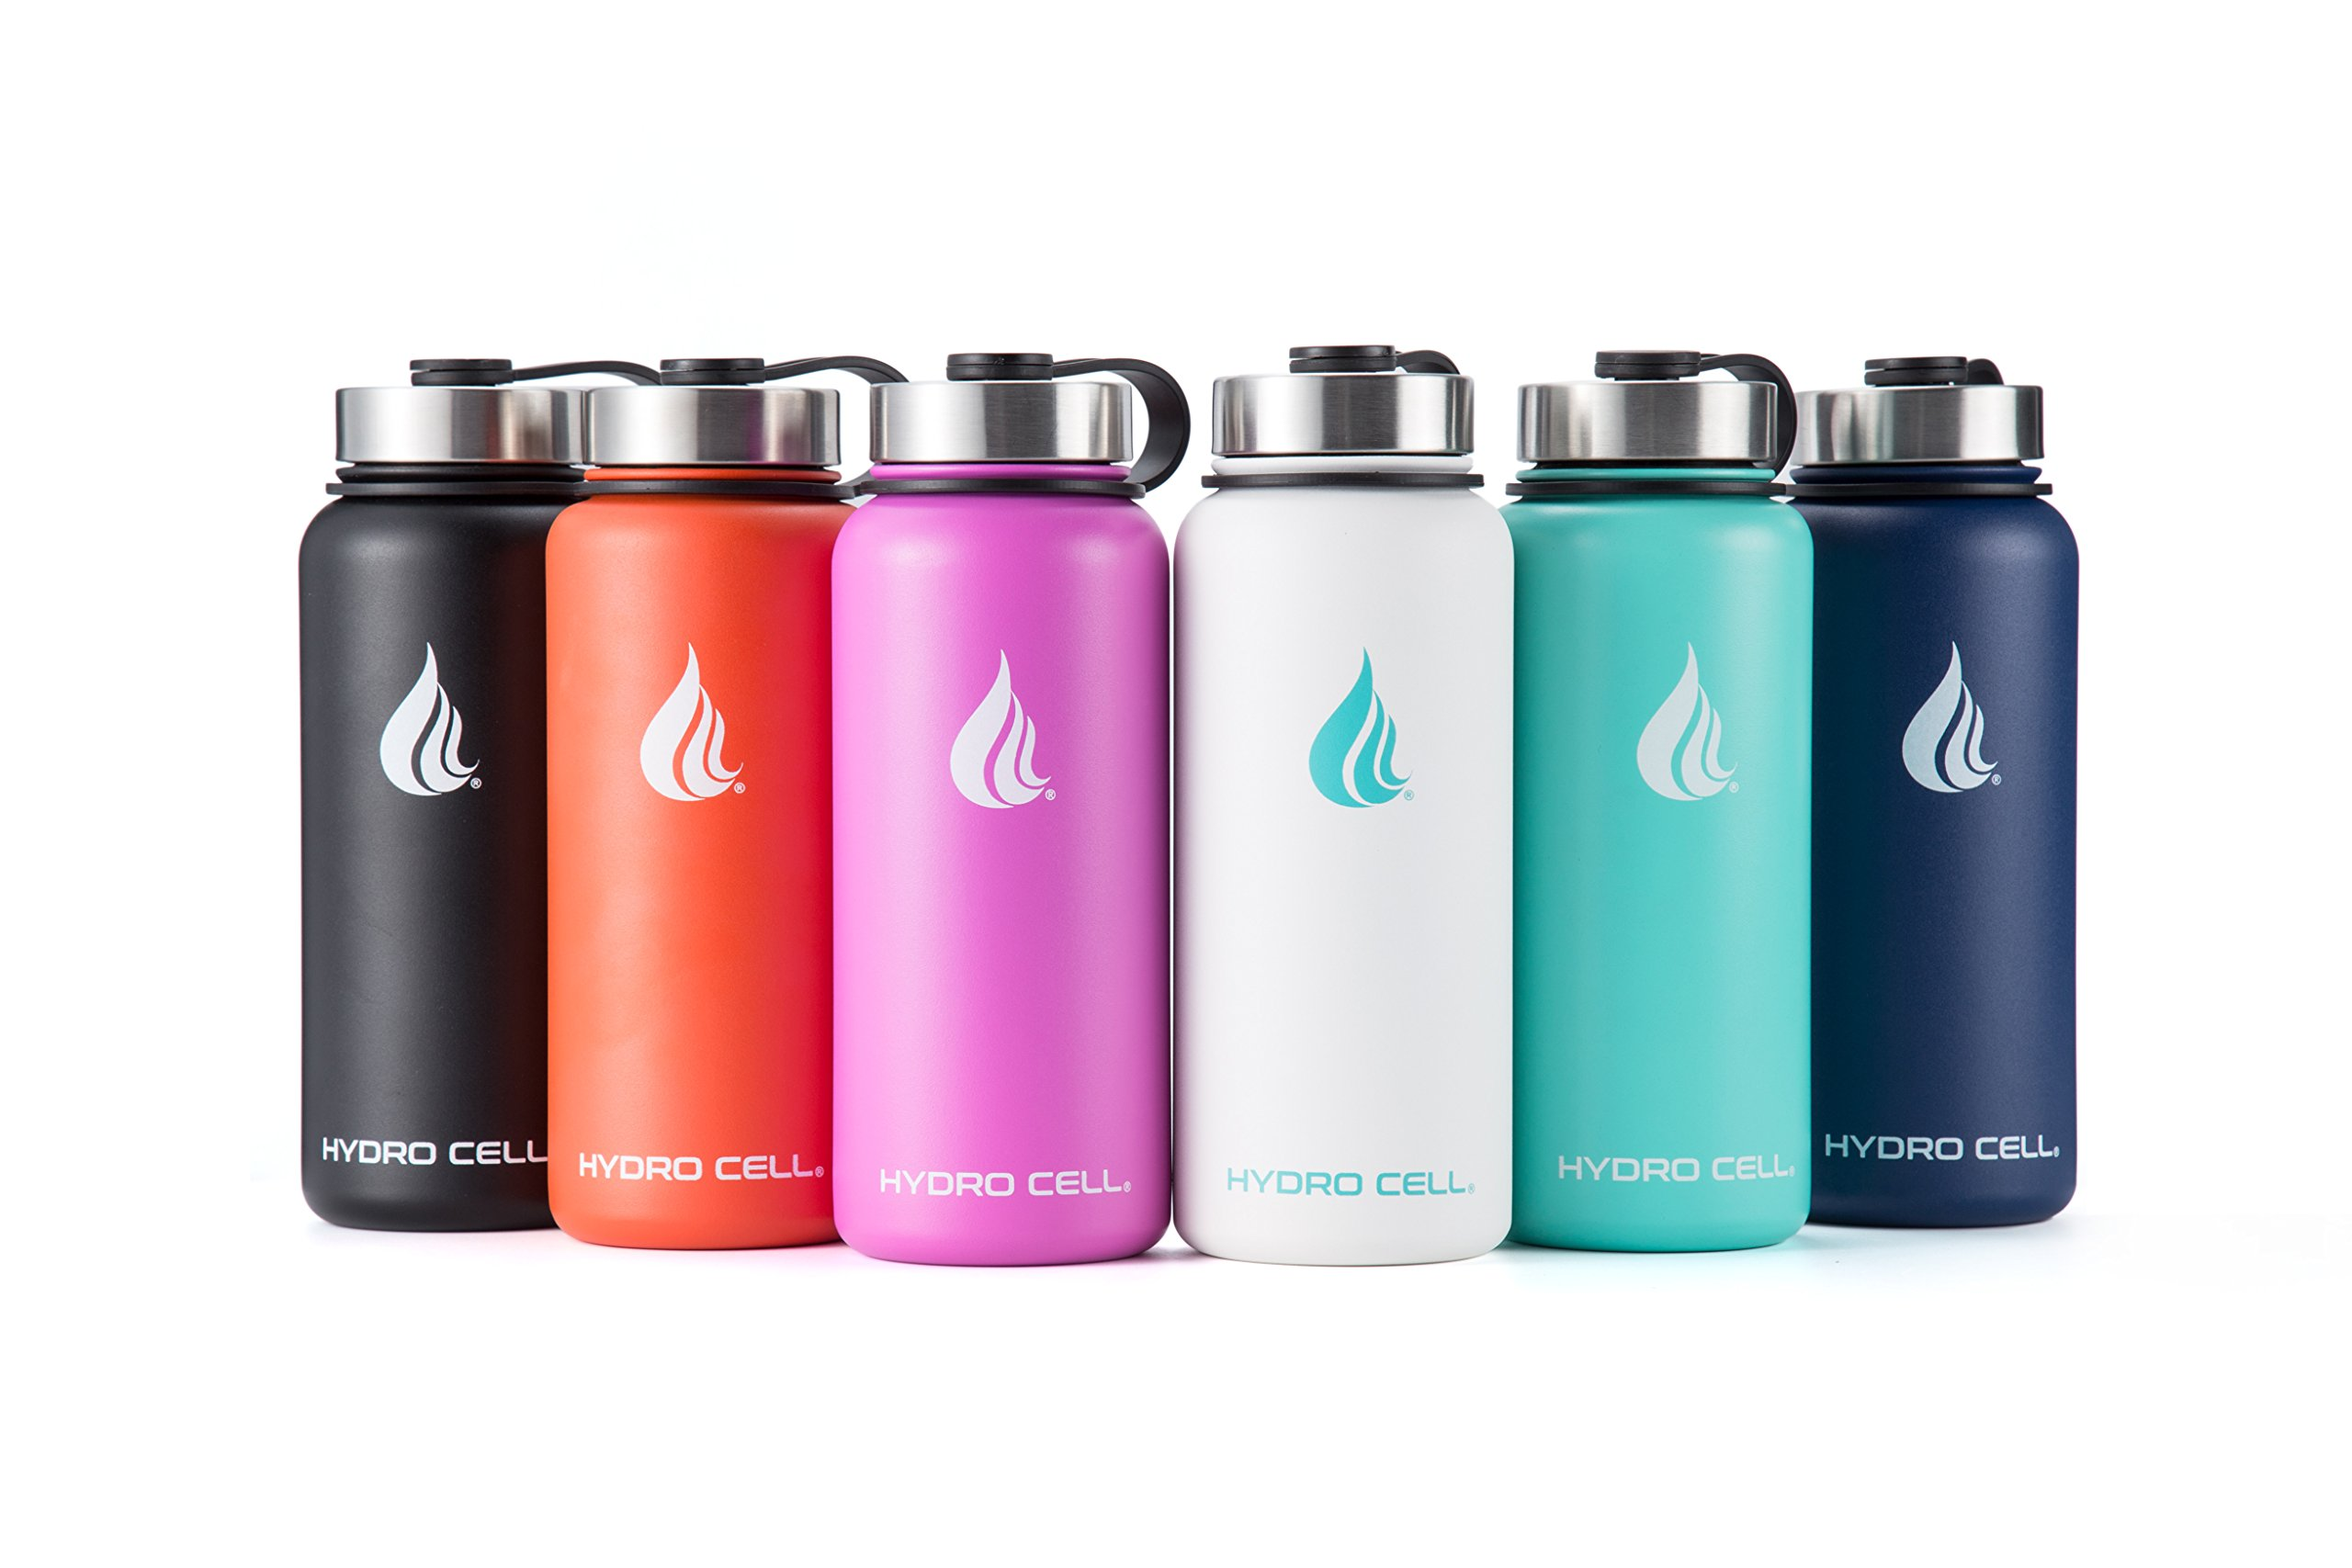 HYDRO CELL Stainless Steel Water Bottle with Straw & Wide Mouth Lids (32 oz or 22 oz) - Keeps Liquids Perfectly Hot or Cold with Double Wall Vacuum Insulated Sweat Proof Sport Design (Teal 32 oz) by HYDRO CELL